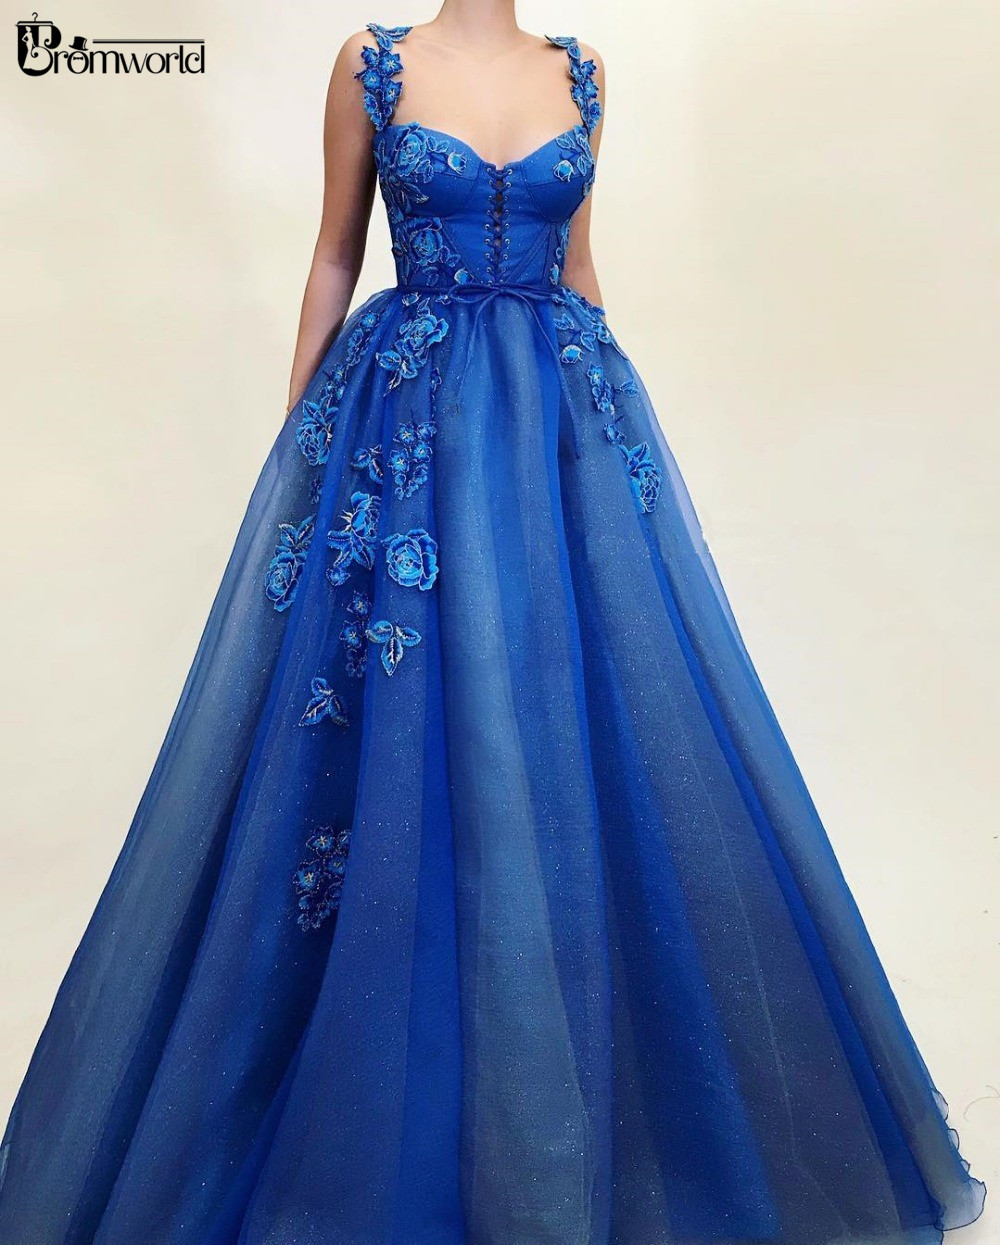 Royal Blue Muslim   Evening     Dresses   2019 A-line Embroidery Flowers Dubai Saudi Arabic Formal   Evening   Gown Long Prom   Dress   Party